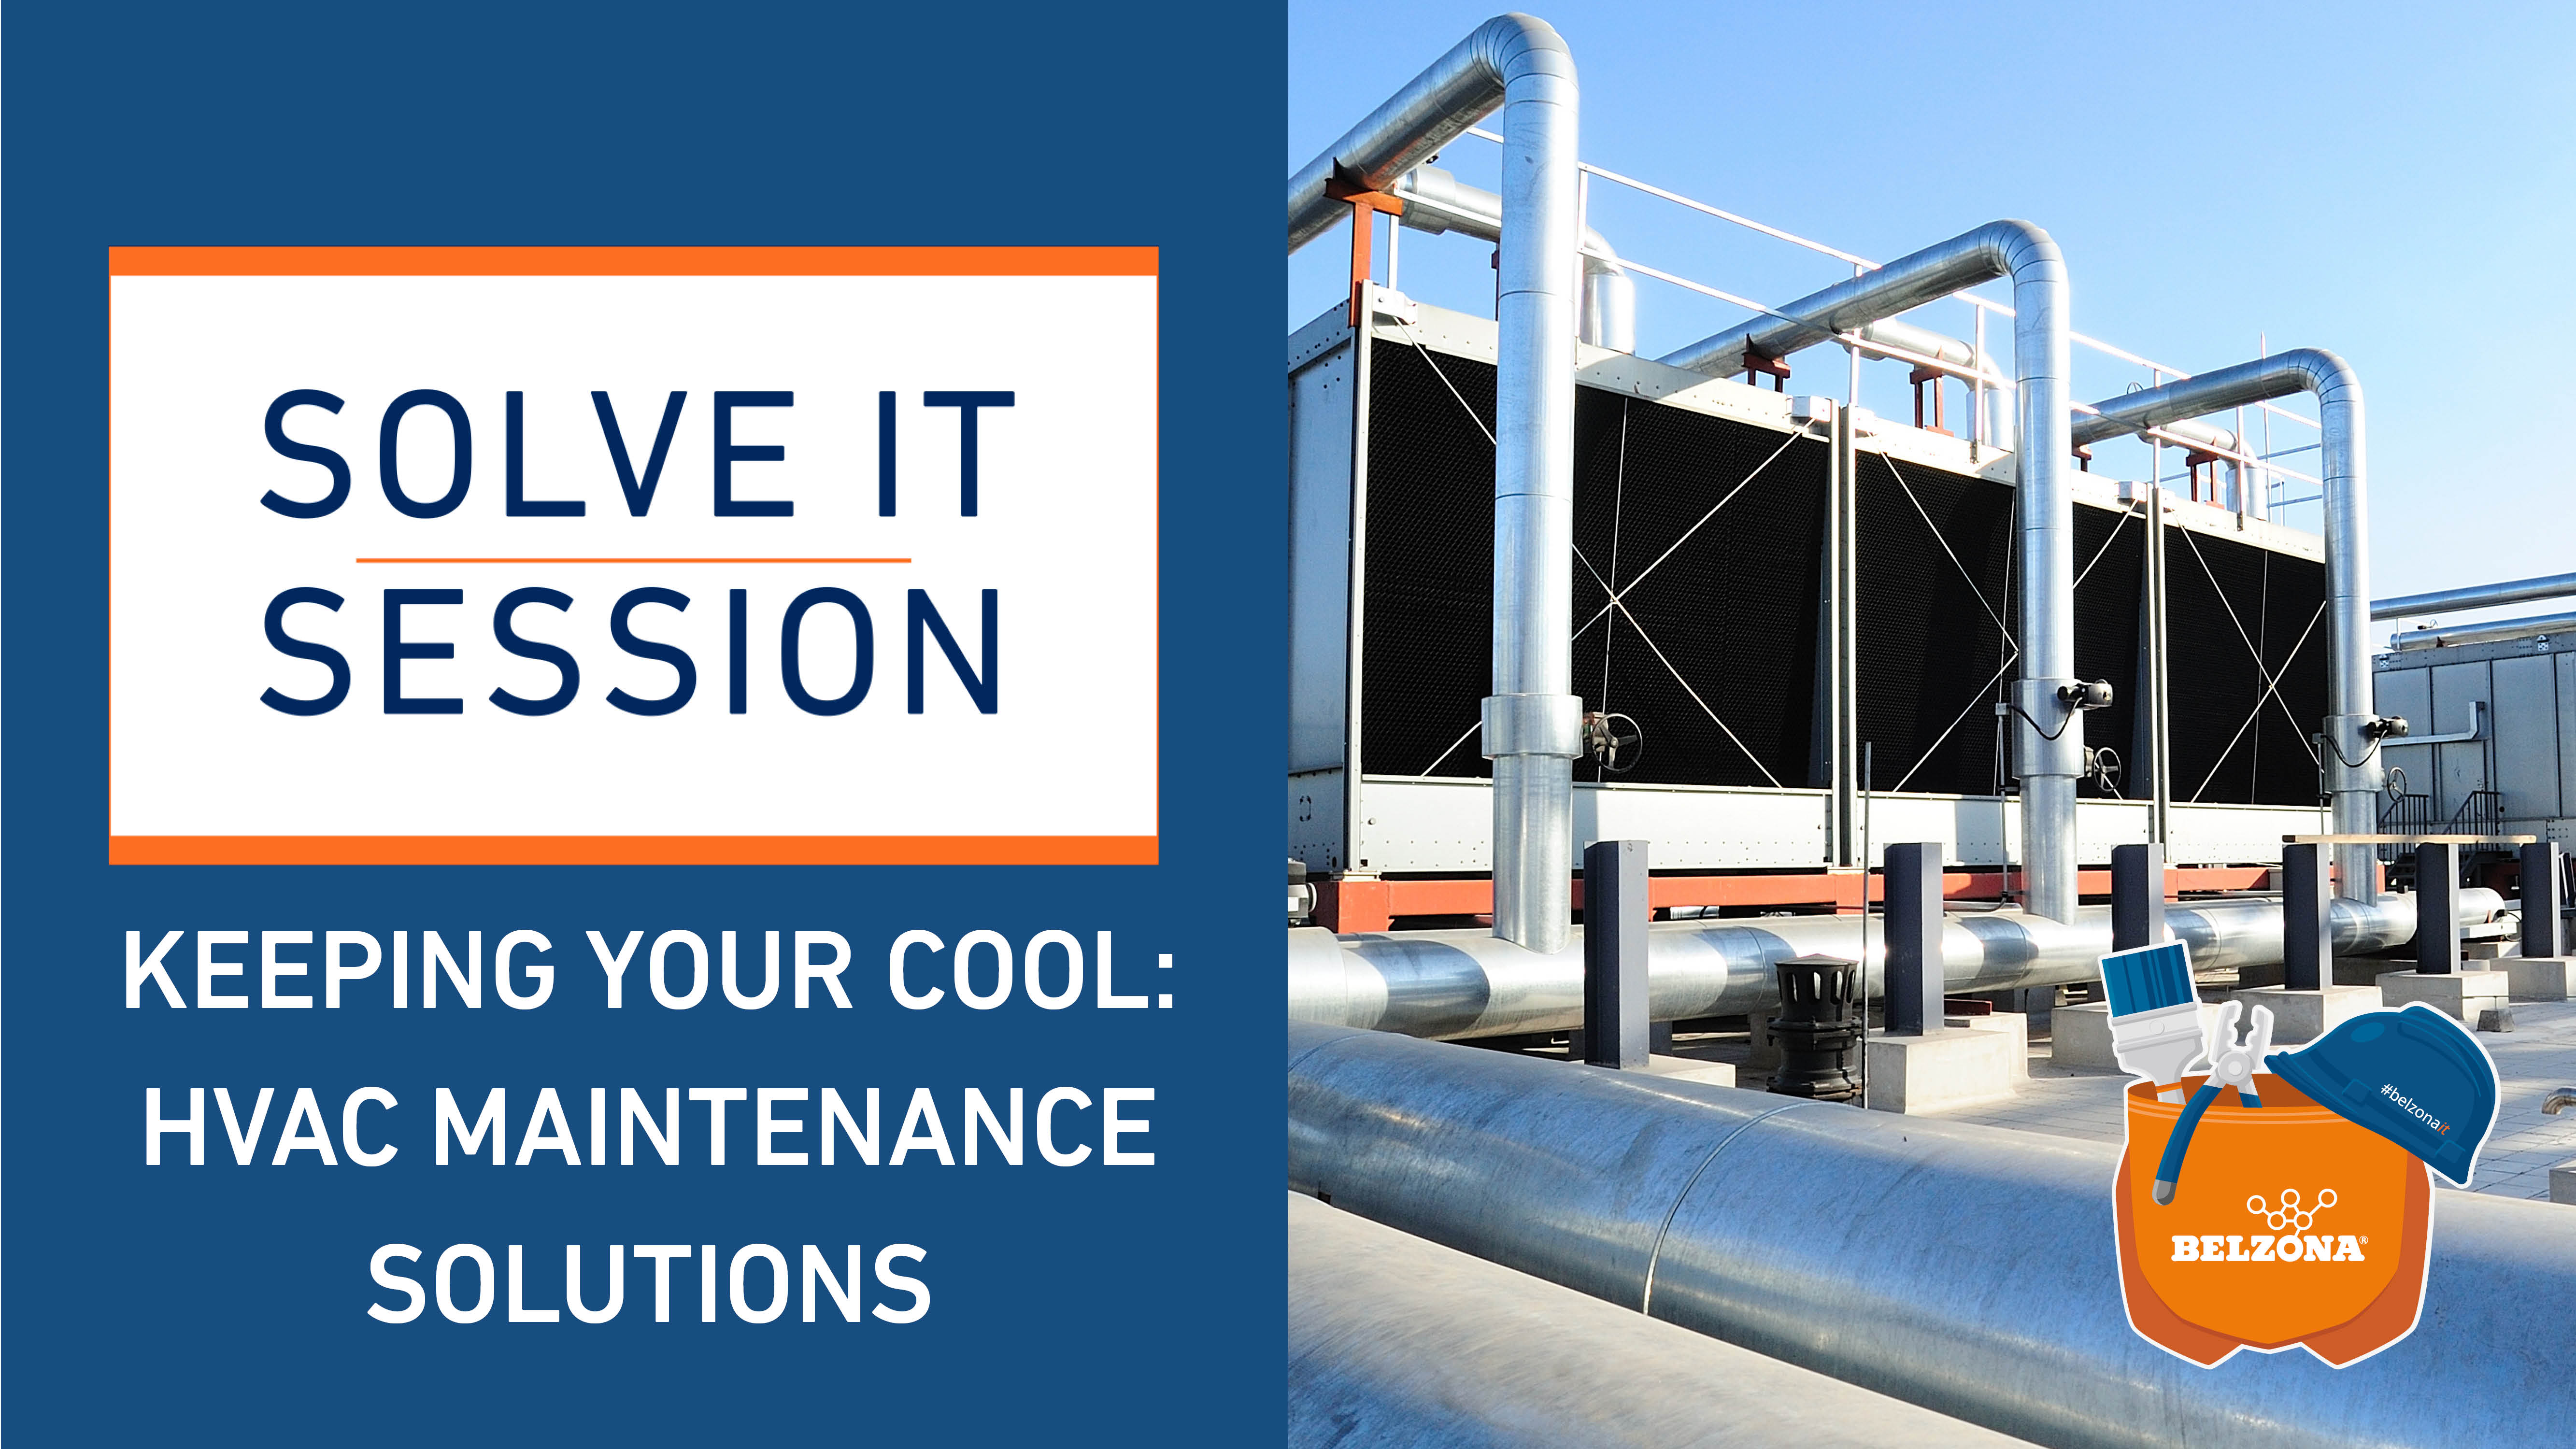 KEEPING YOUR COOL: HVAC MAINTENANCE SOLUTIONS